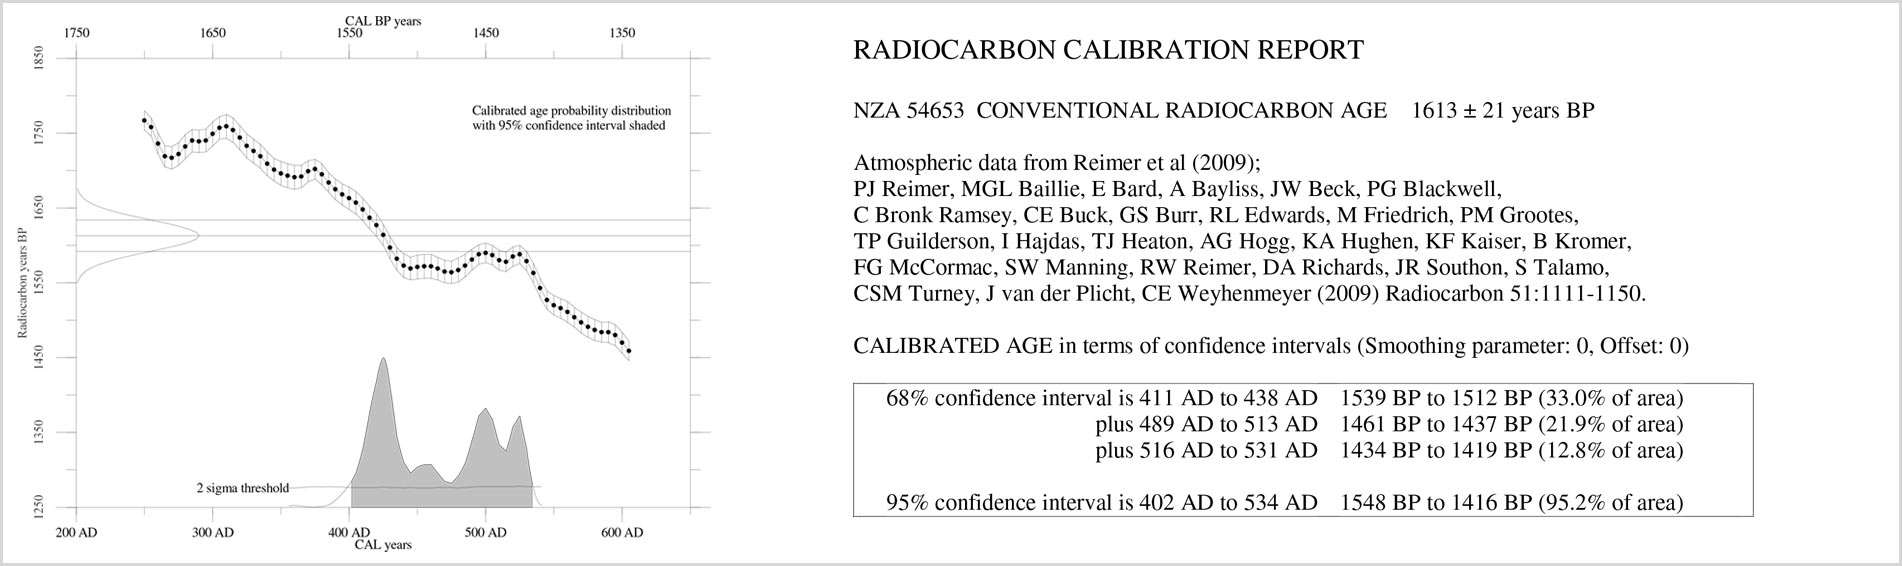 Advantages and disadvantages of radiocarbon dating